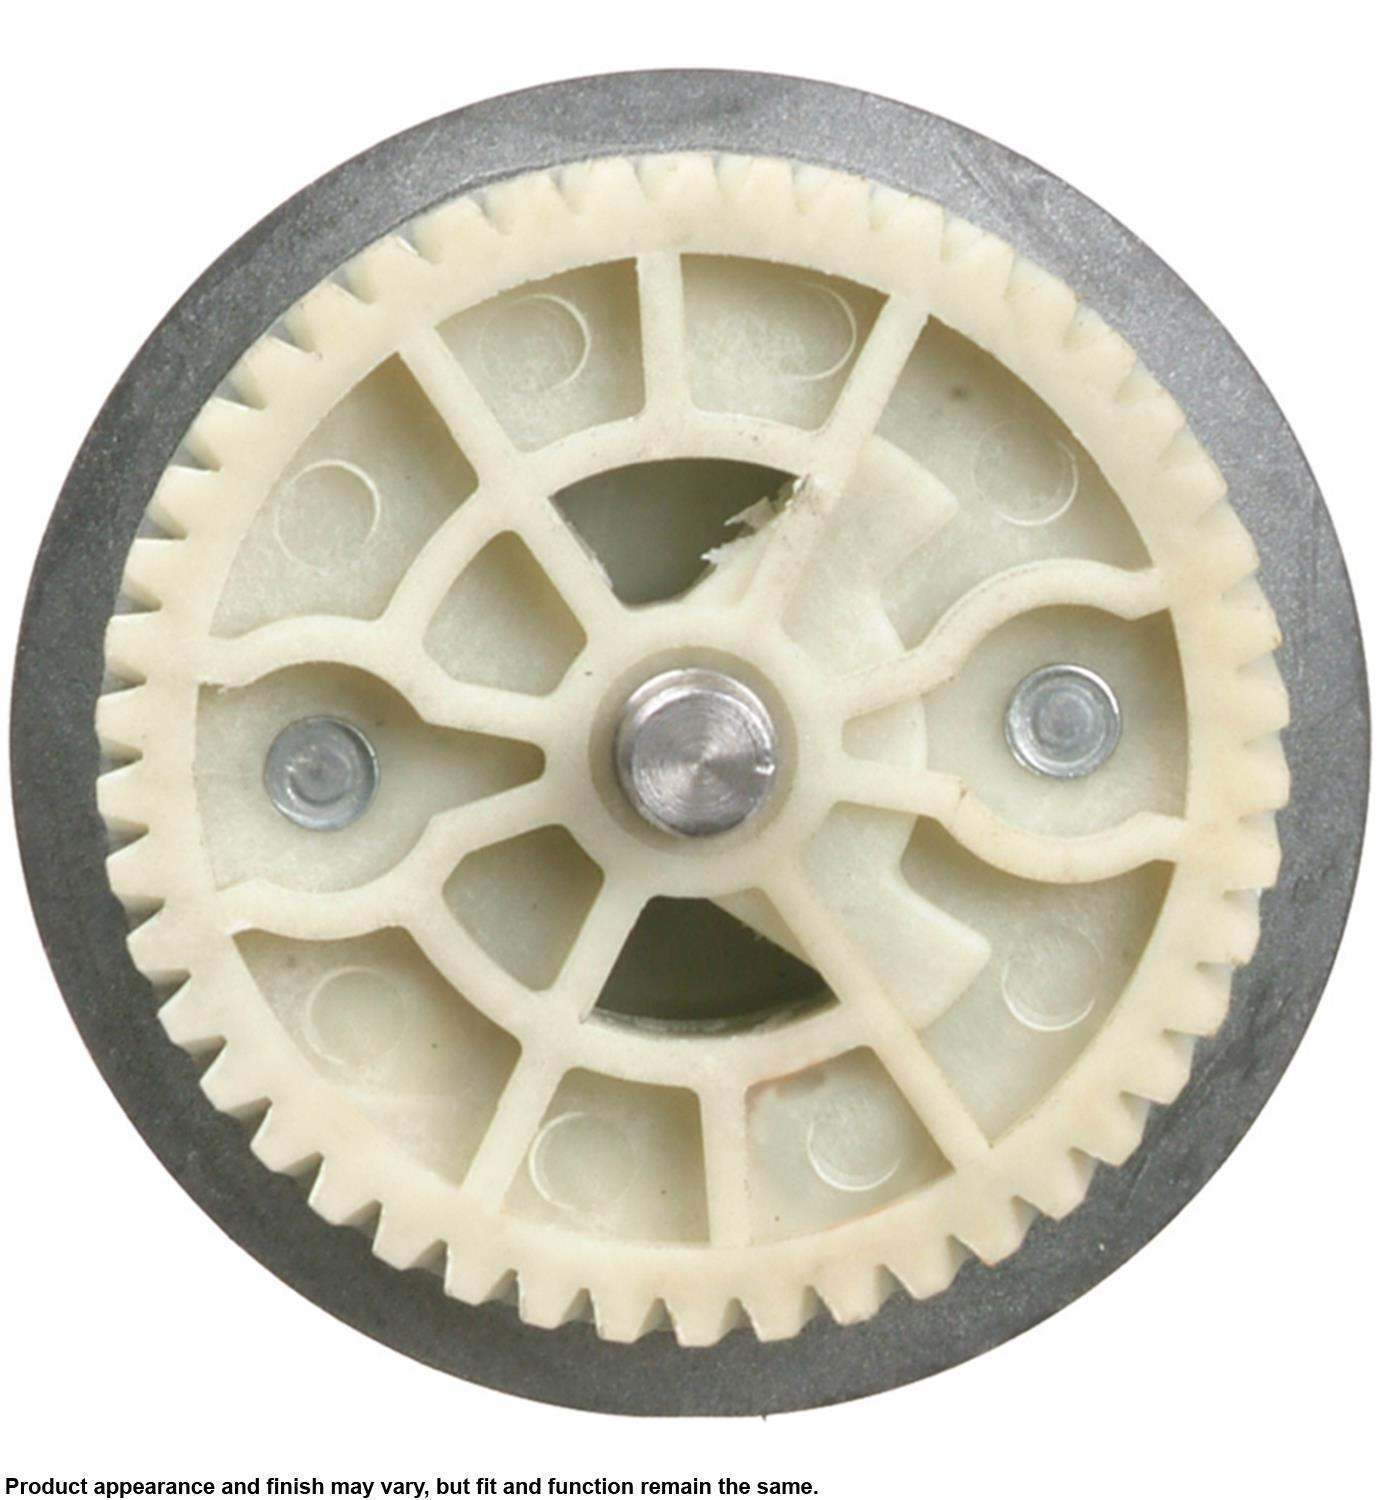 Power Window Motor Gear Kit